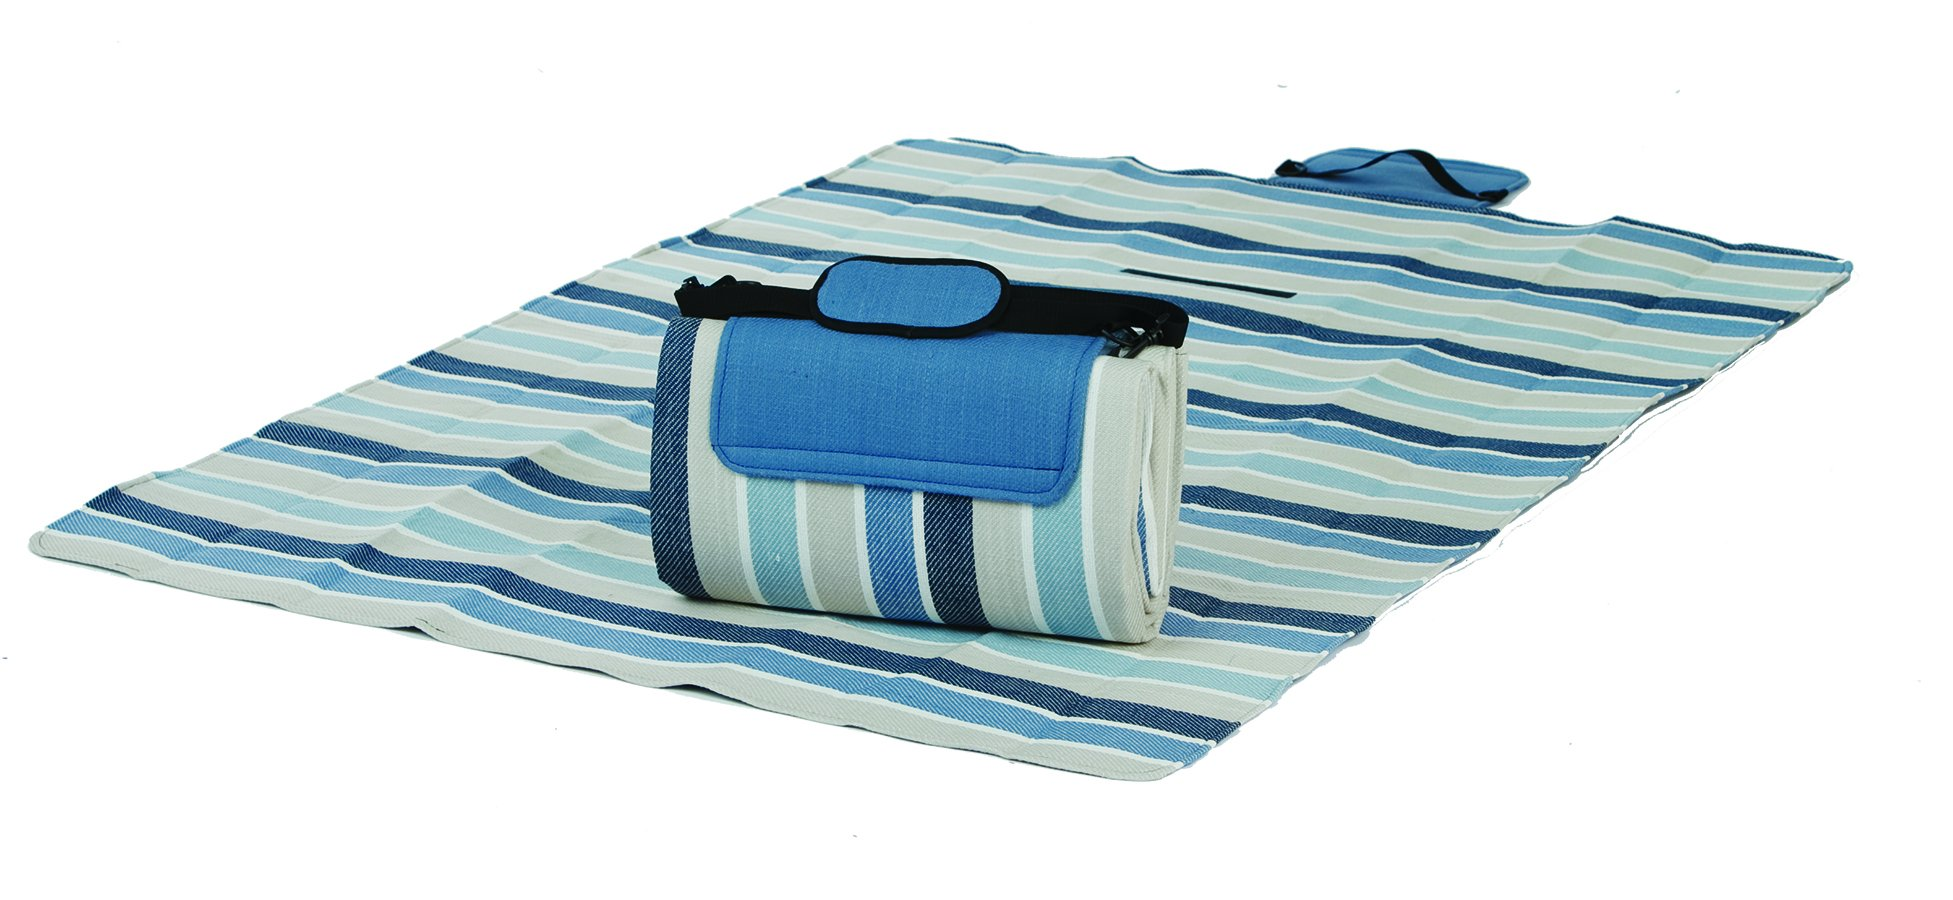 Mega Mat 100% Waterproof Backing All Season Picnic Blanket, Beach Mat And More Opens To 68''X 82'', Seats 4-6 Persons Plus Gear (Blue Stone Stripe)